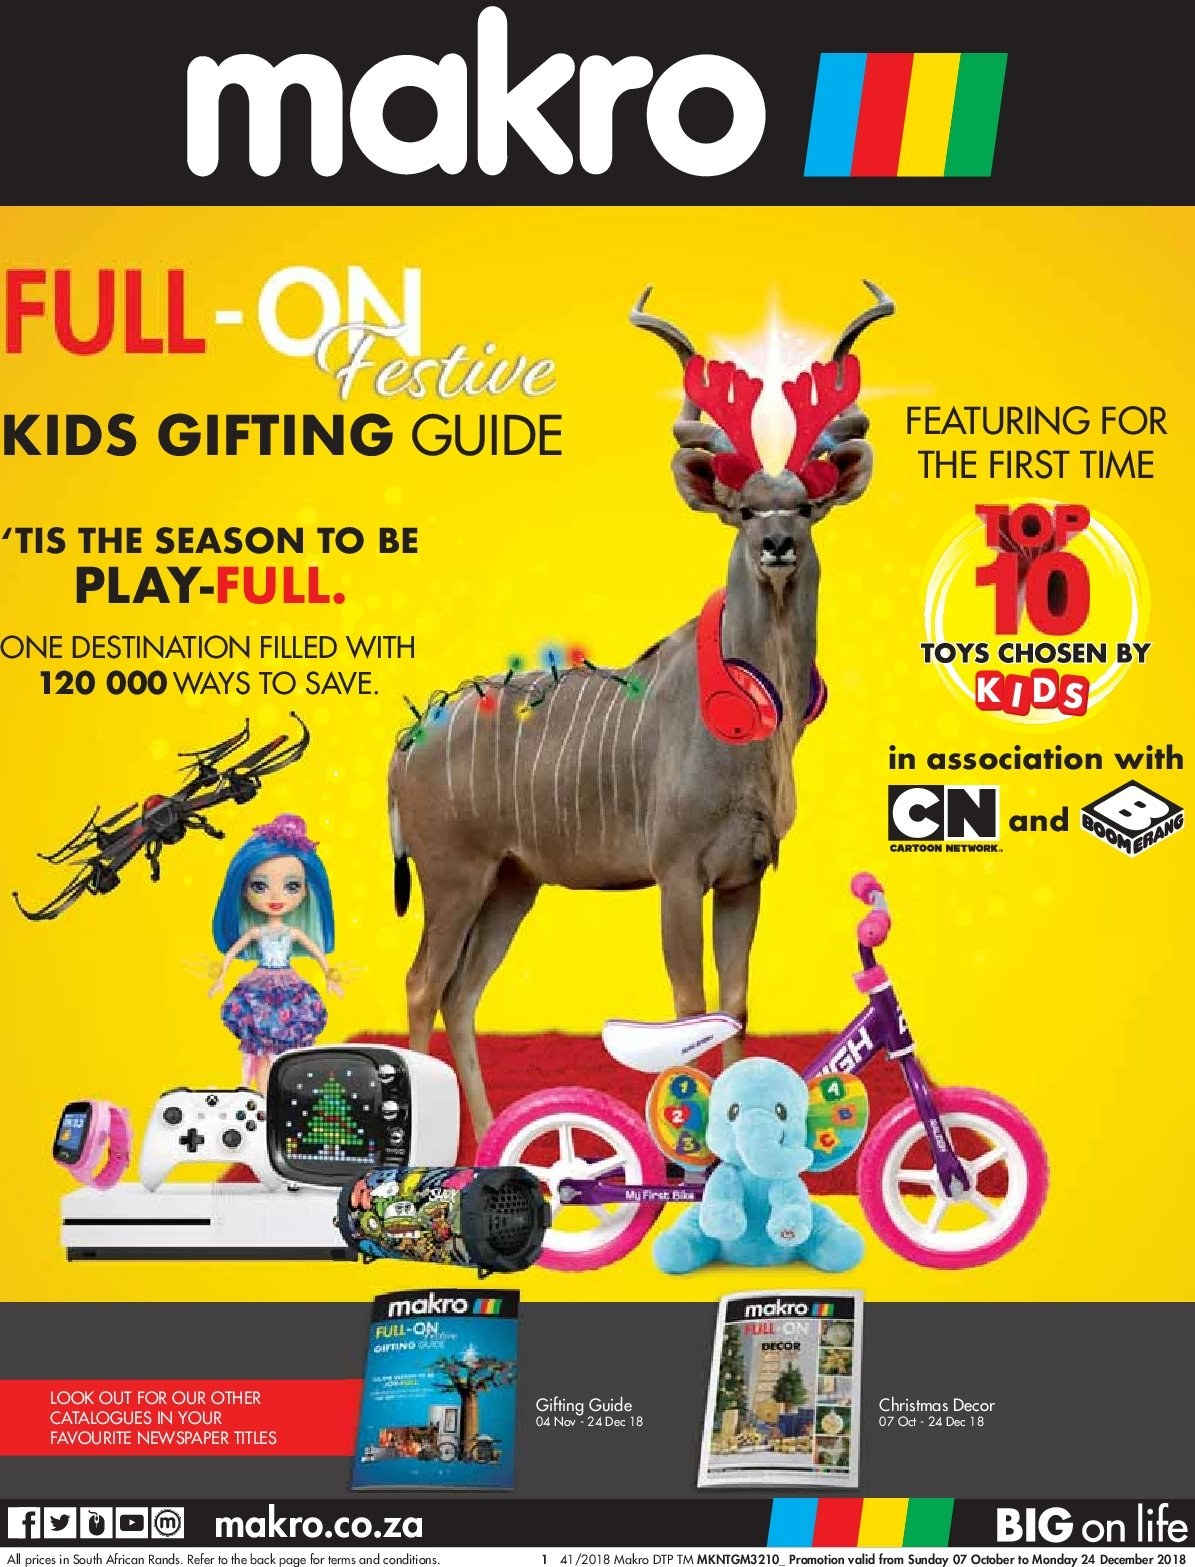 Makro special - 10.07.2018 - 12.24.2018 - Sales products - tie, toys. Page 1.